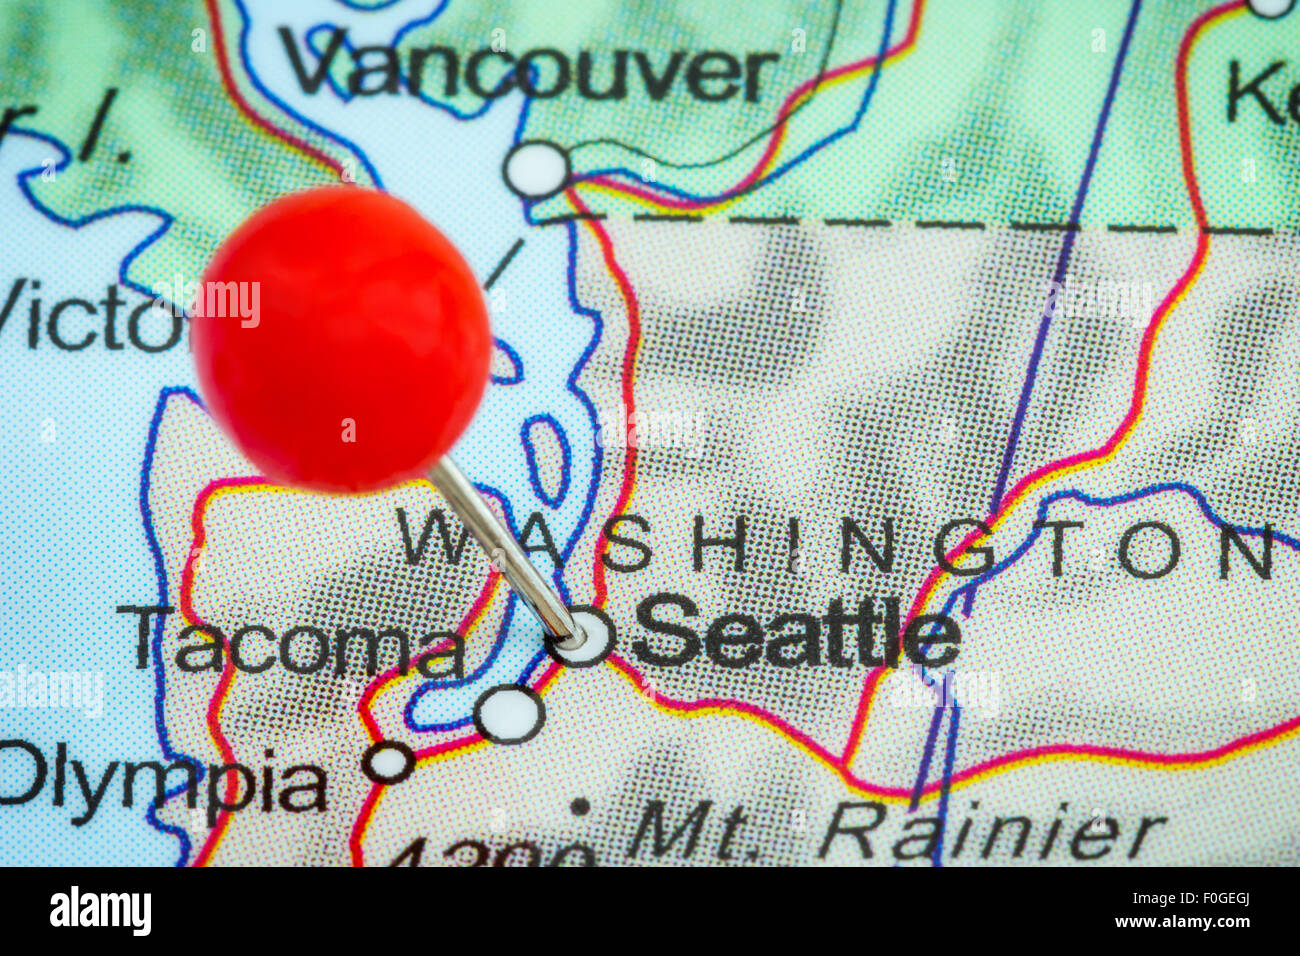 Close-up of a red pushpin on a map of Seattle, USA Stock ... on seattle income map, seattle road map, seattle on washington, seattle washington location, seattle washington attractions map, south seattle map, seattle city on a map of the us, seattle on texas map, seattle tourist map, seattle wa, seattle visitors guide map, seattle vancouver victoria map, seattle space needle map, seattle state map, london tube map, seattle area map, seattle subway map, seattle to new york city map, seattle on world map, seattle on map of north america,